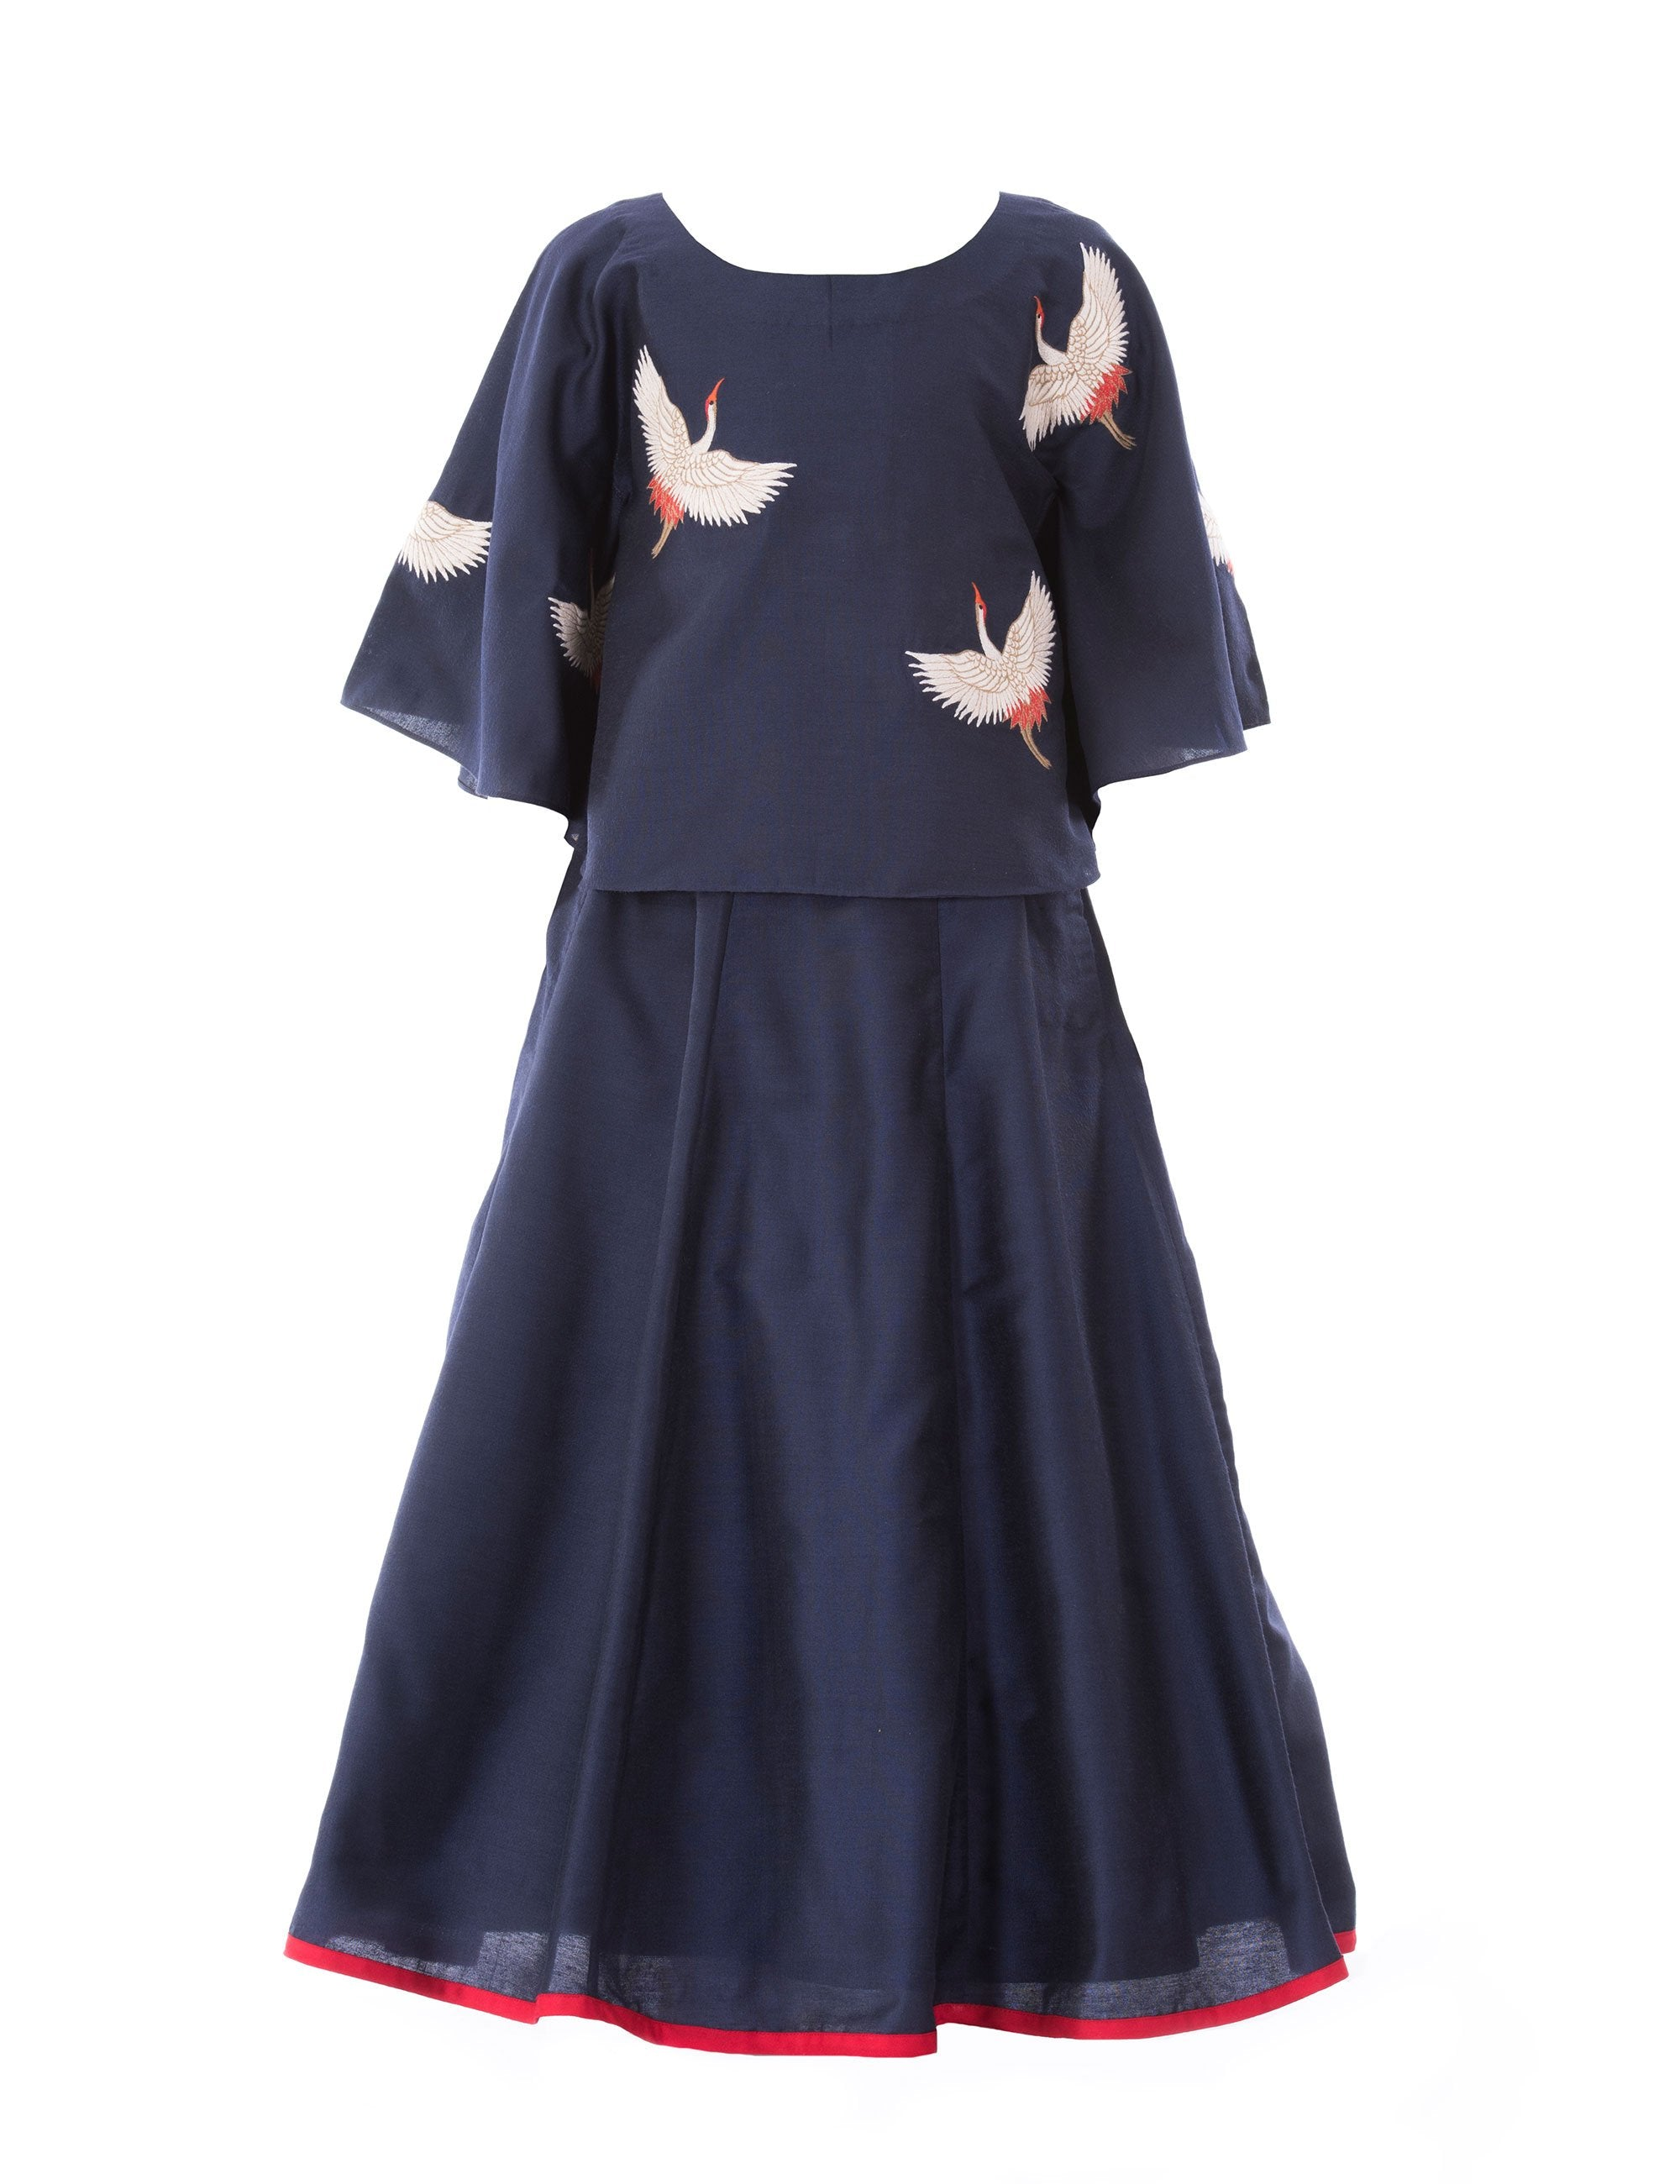 Crane Top with Skirt in Blue for Girls